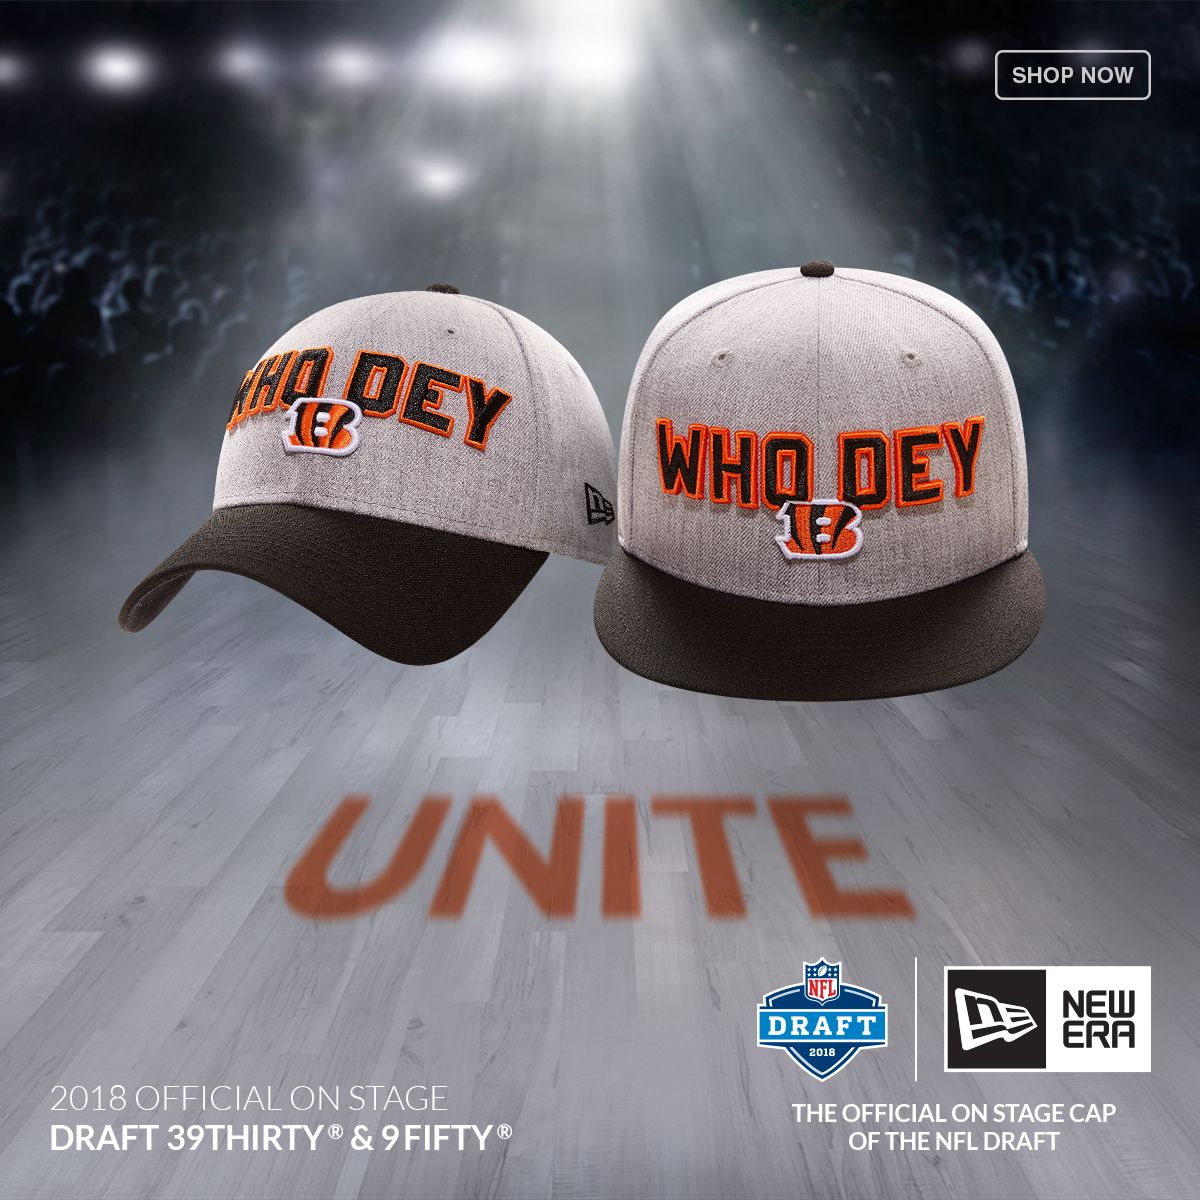 Get ready for the draft with the New Era 2018 NFL Draft Cap at Lids ... 57f912e1f35